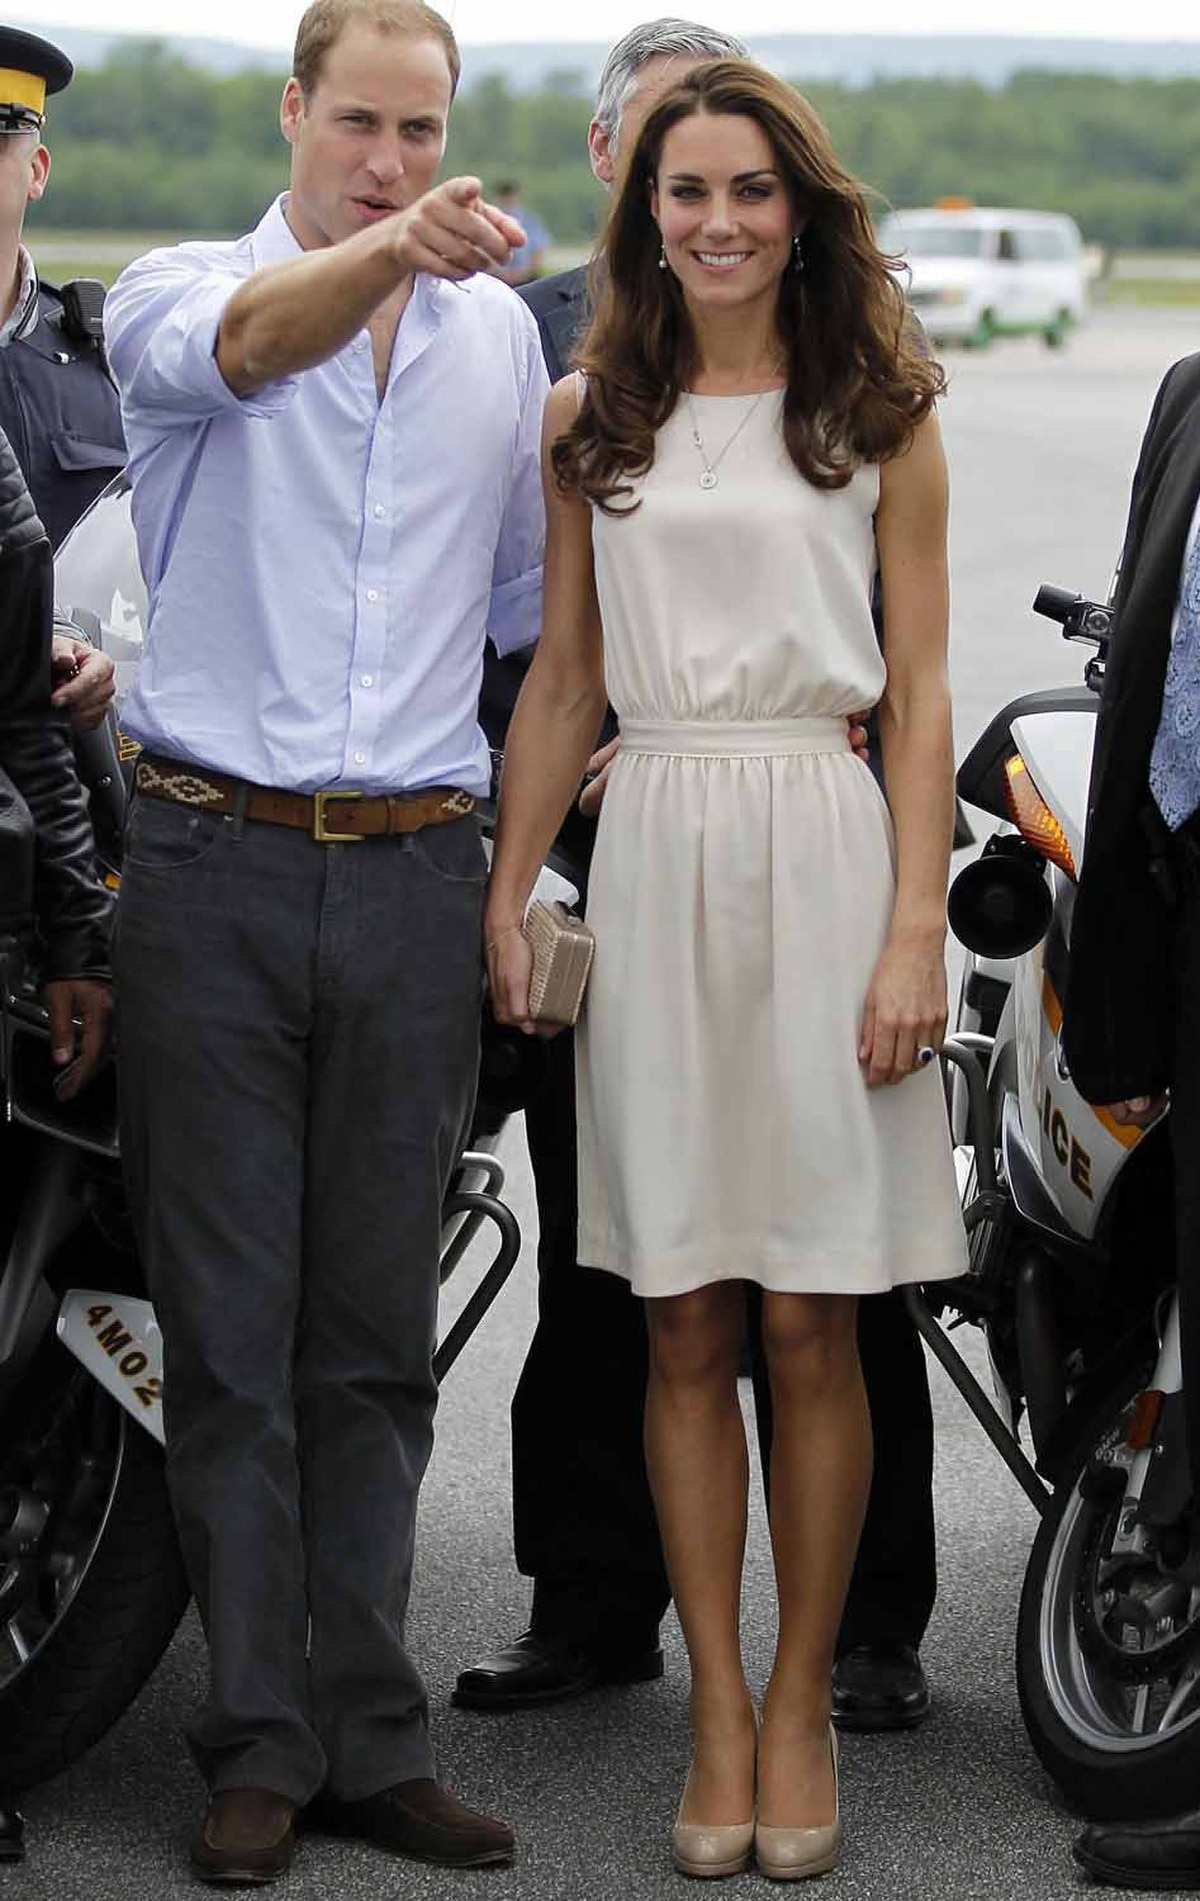 The Duchess leaves Quebec on July 3 in a blousy cream dress by Joseph, a British label.